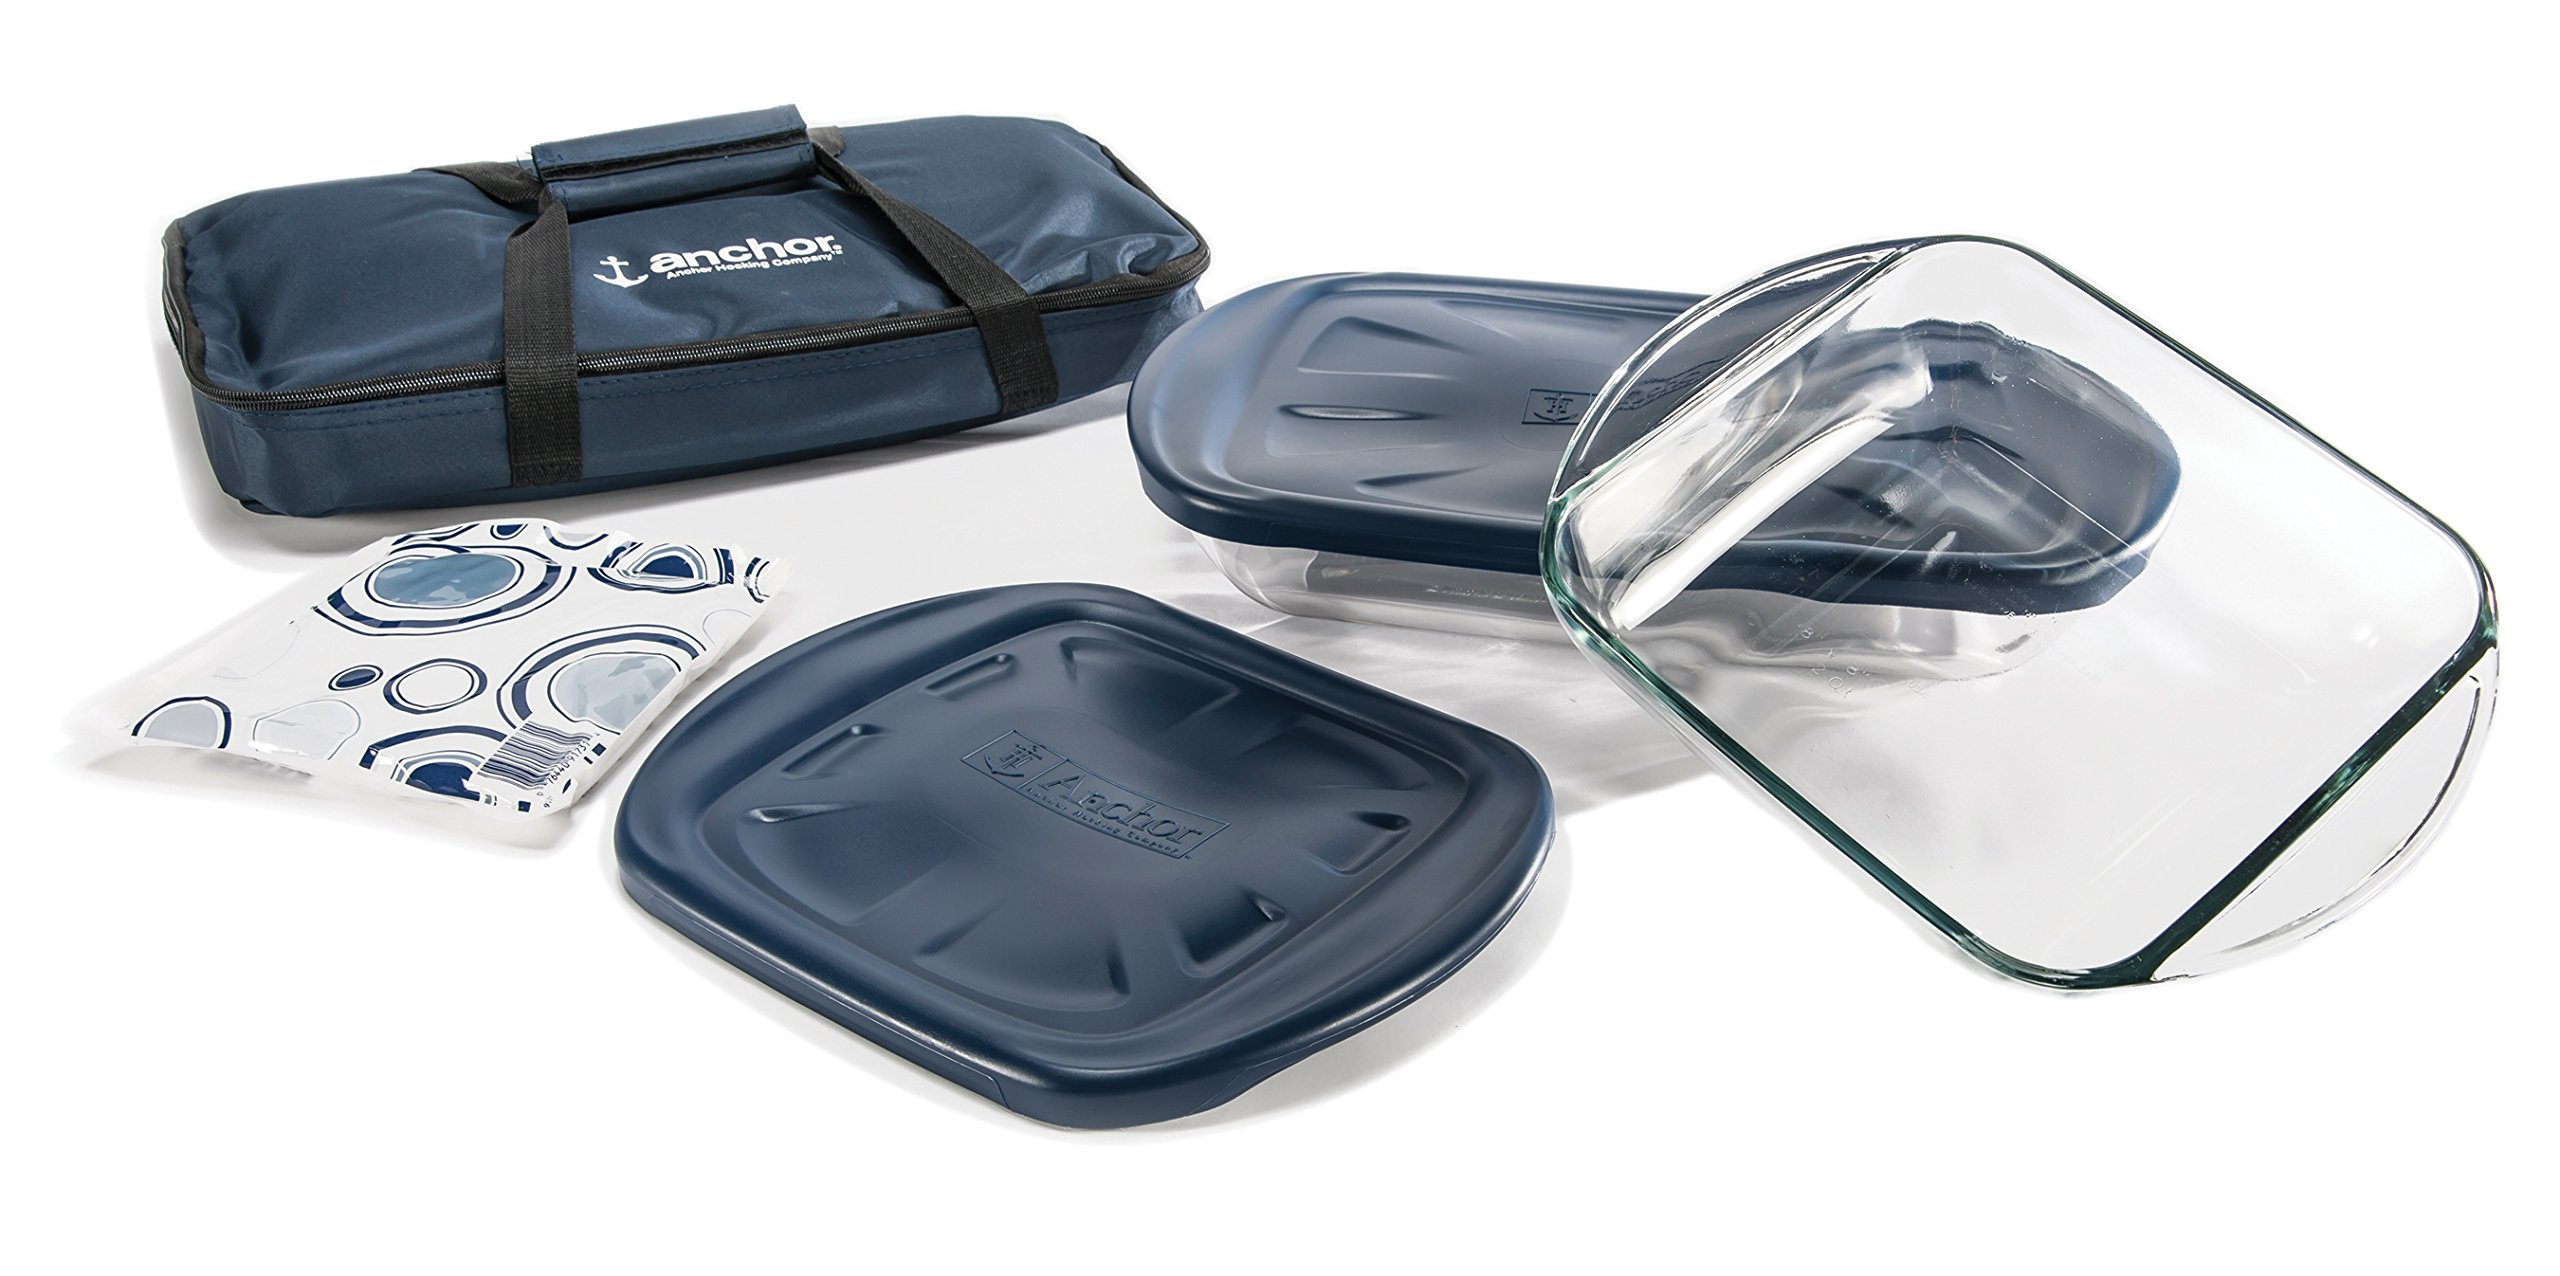 Anchor Hocking 6-Piece Essentials Bake-N-Take Set with Blue Plastic Lid and Blue Tote by Anchor Hocking (Image #4)